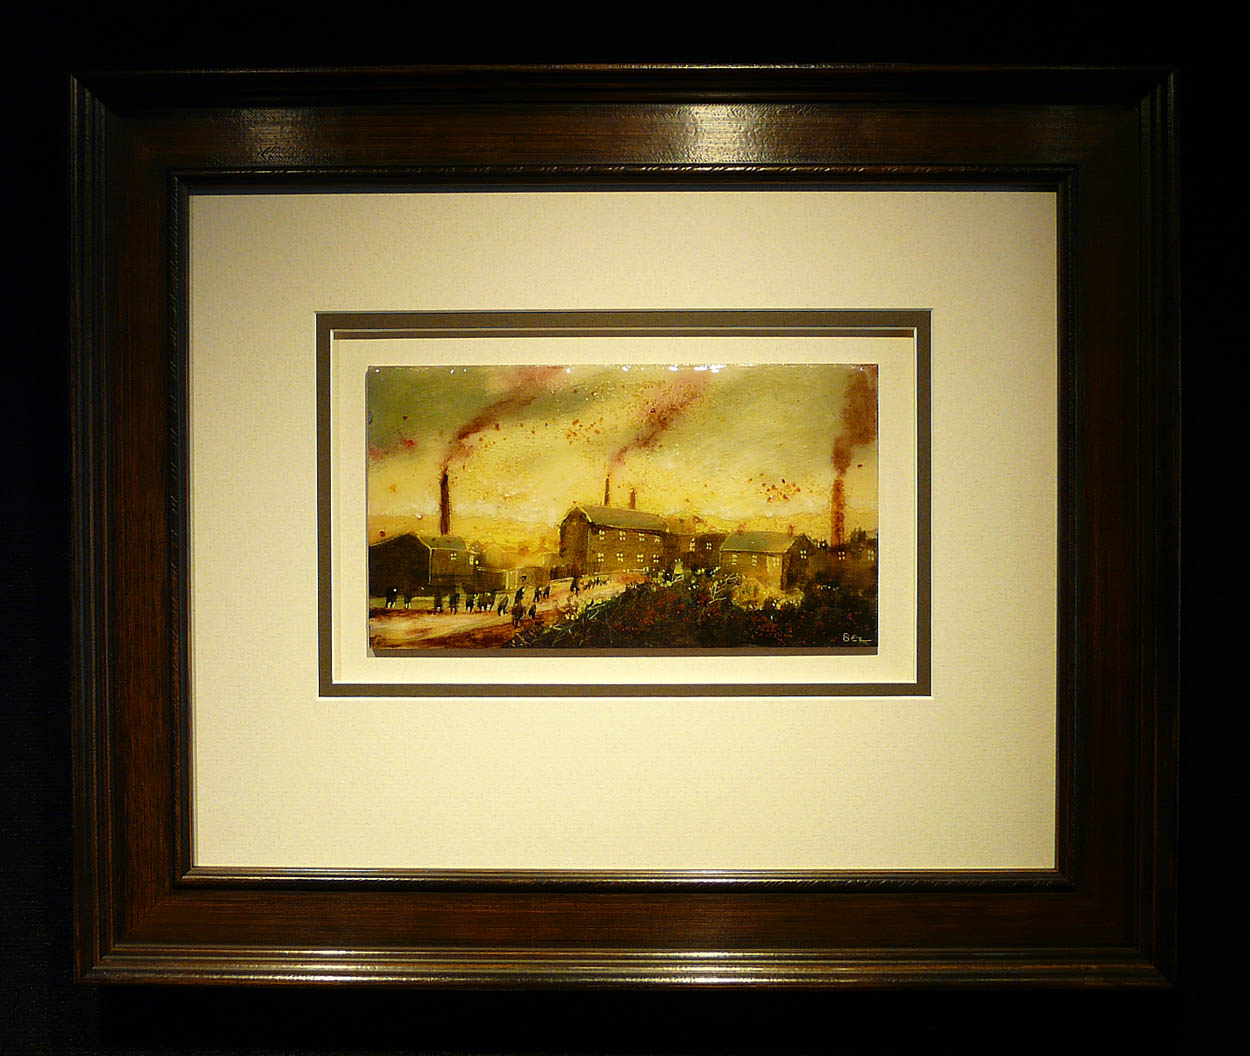 The School Run by David Bez, Children | Nostalgic | Northern | Industrial | Landscape